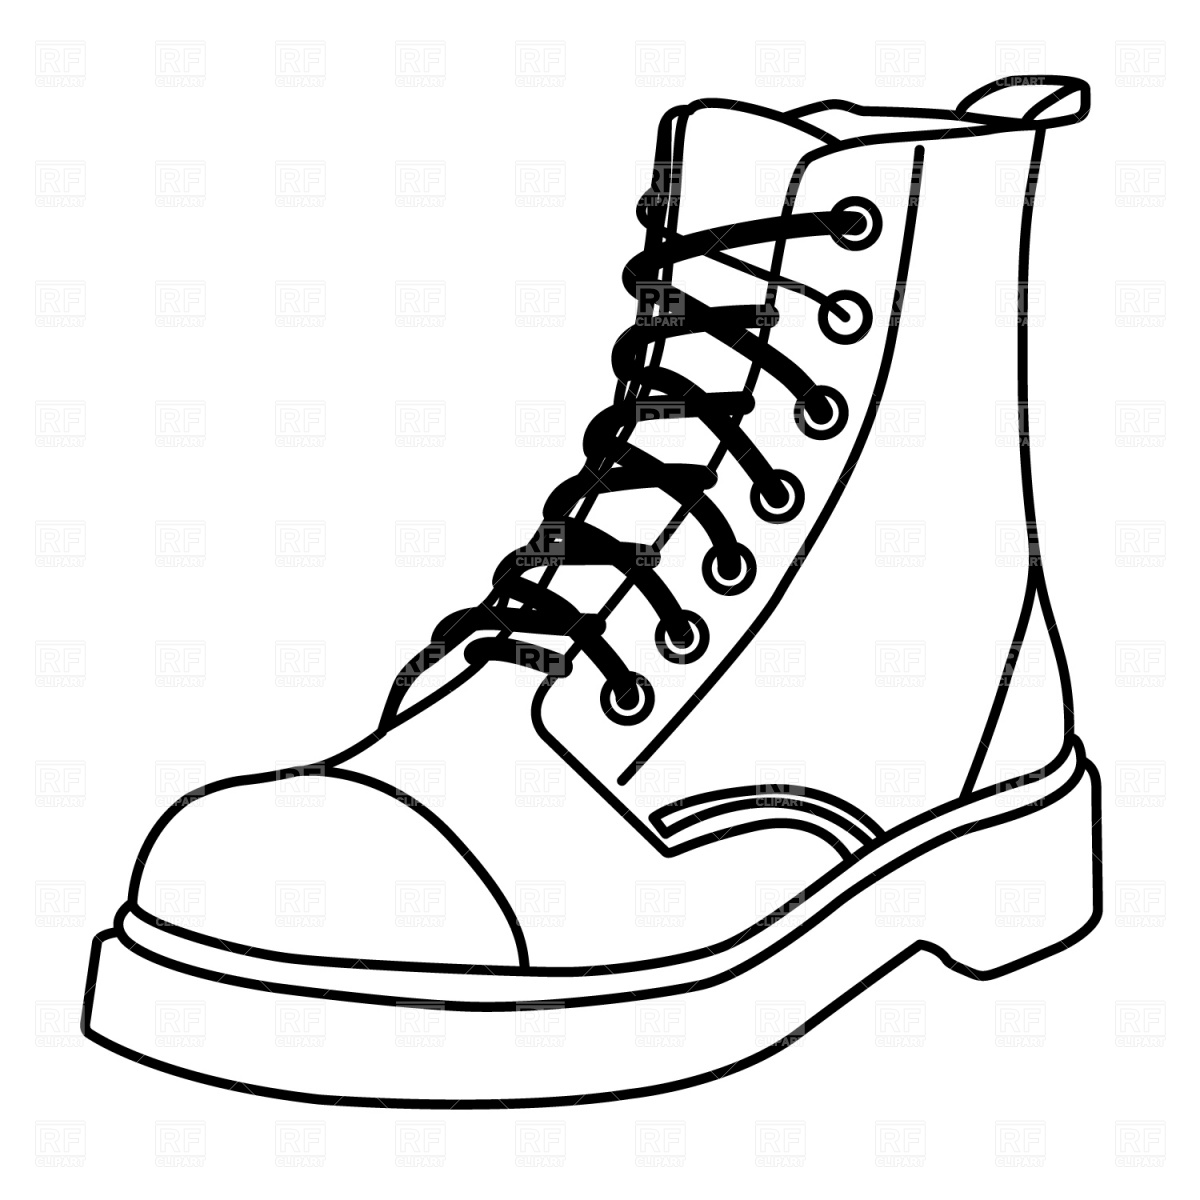 Shoe Print Clip Art - Cliparts.co